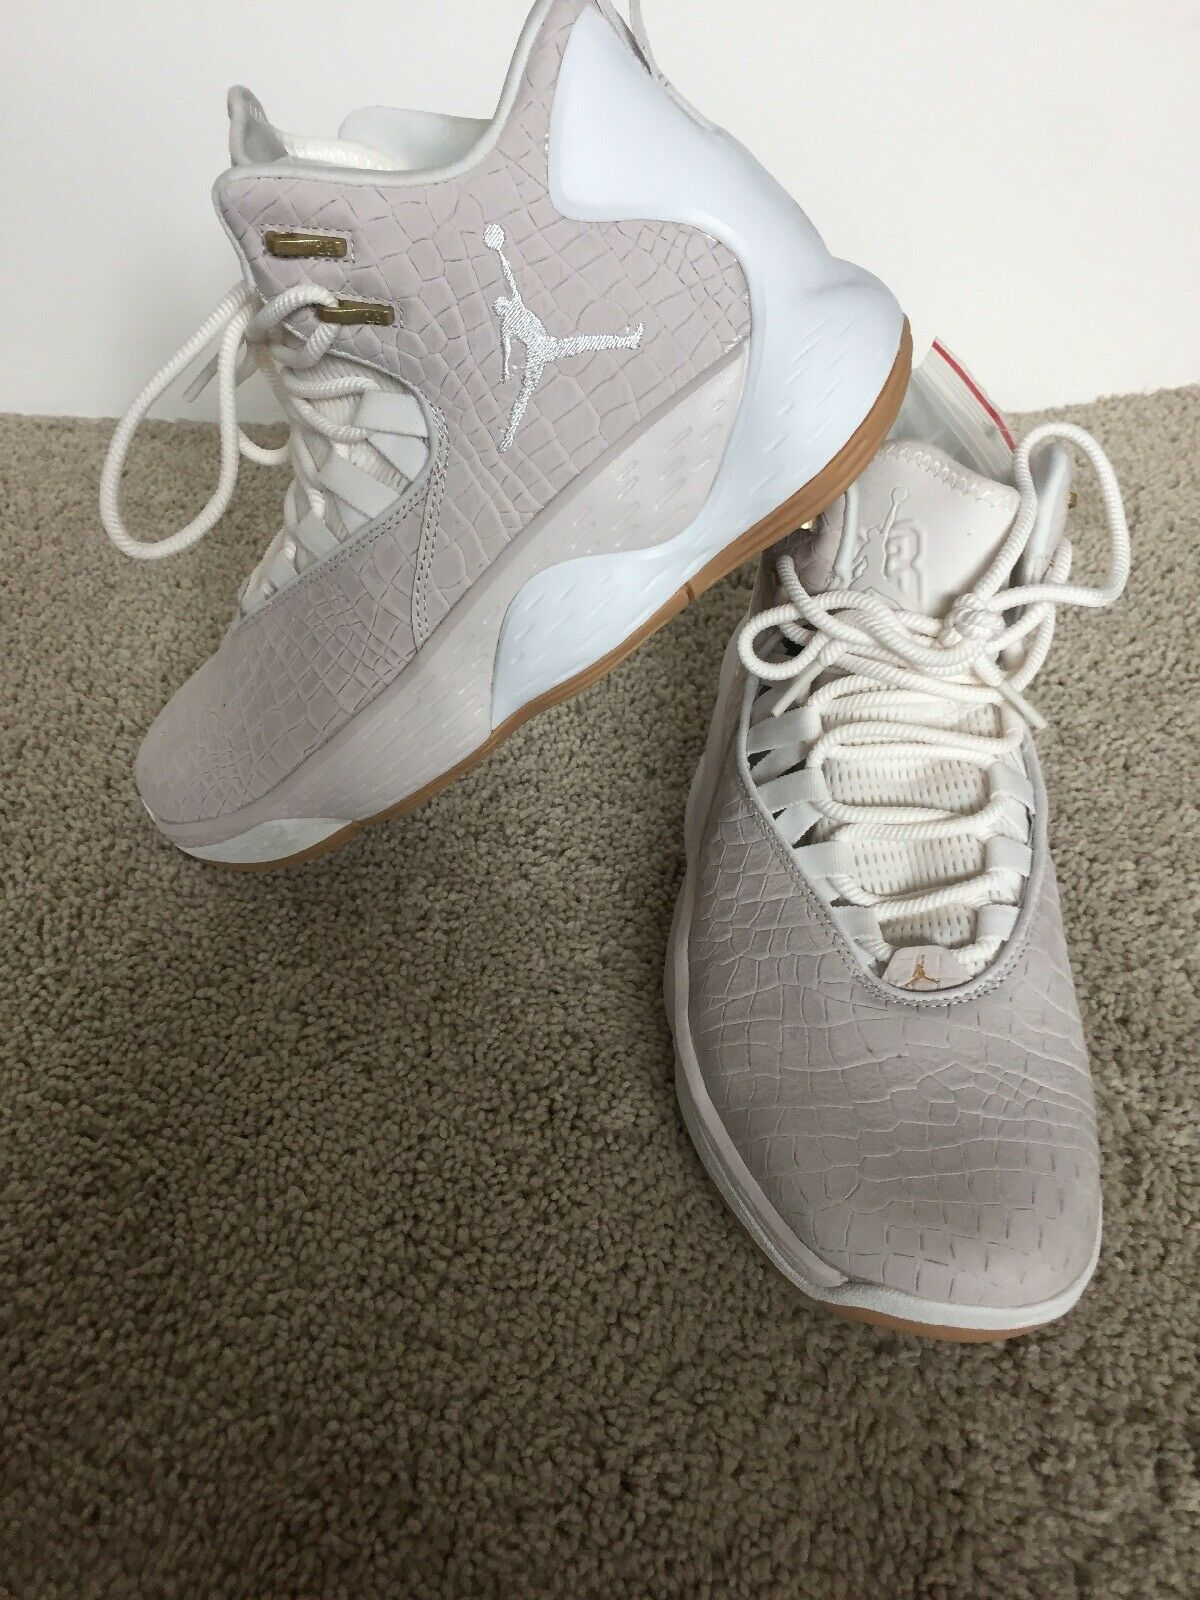 low priced 55634 aa9fe nike jordan super.fly mvp l 43 (at3005-007) (at3005-007) (at3005-007 ...